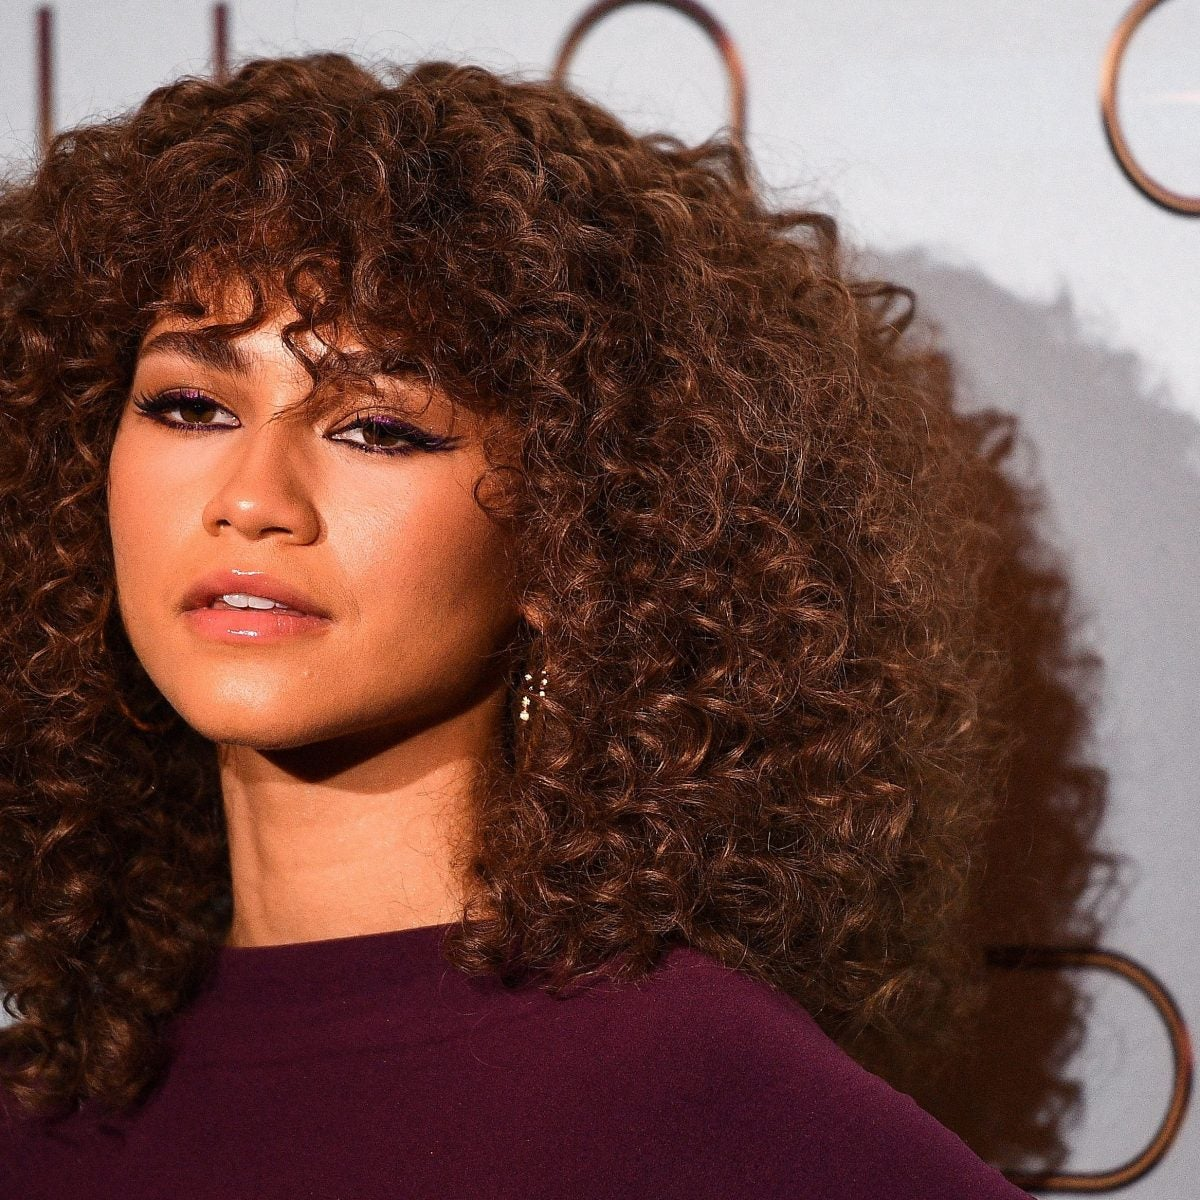 Zendaya Proved Why She's Fashion's It Girl At The Venice Film Festival